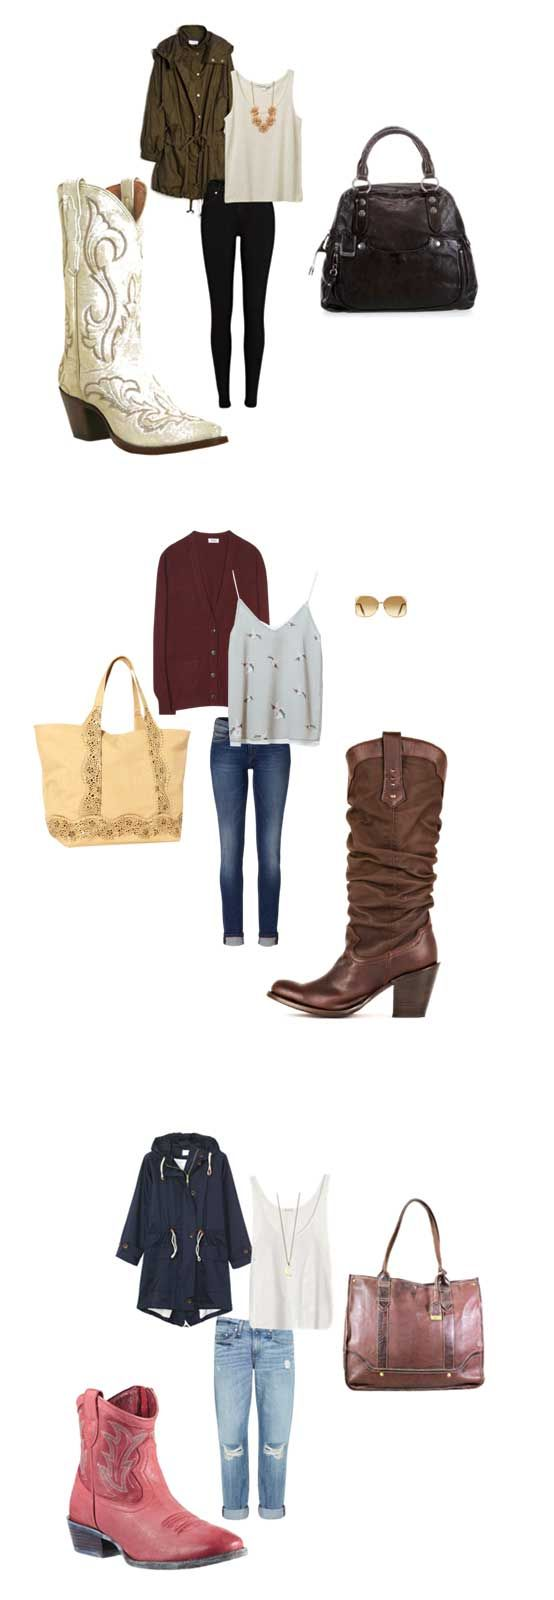 Find your favorite transitional boots & handbags for this fall! | Country Outfitter